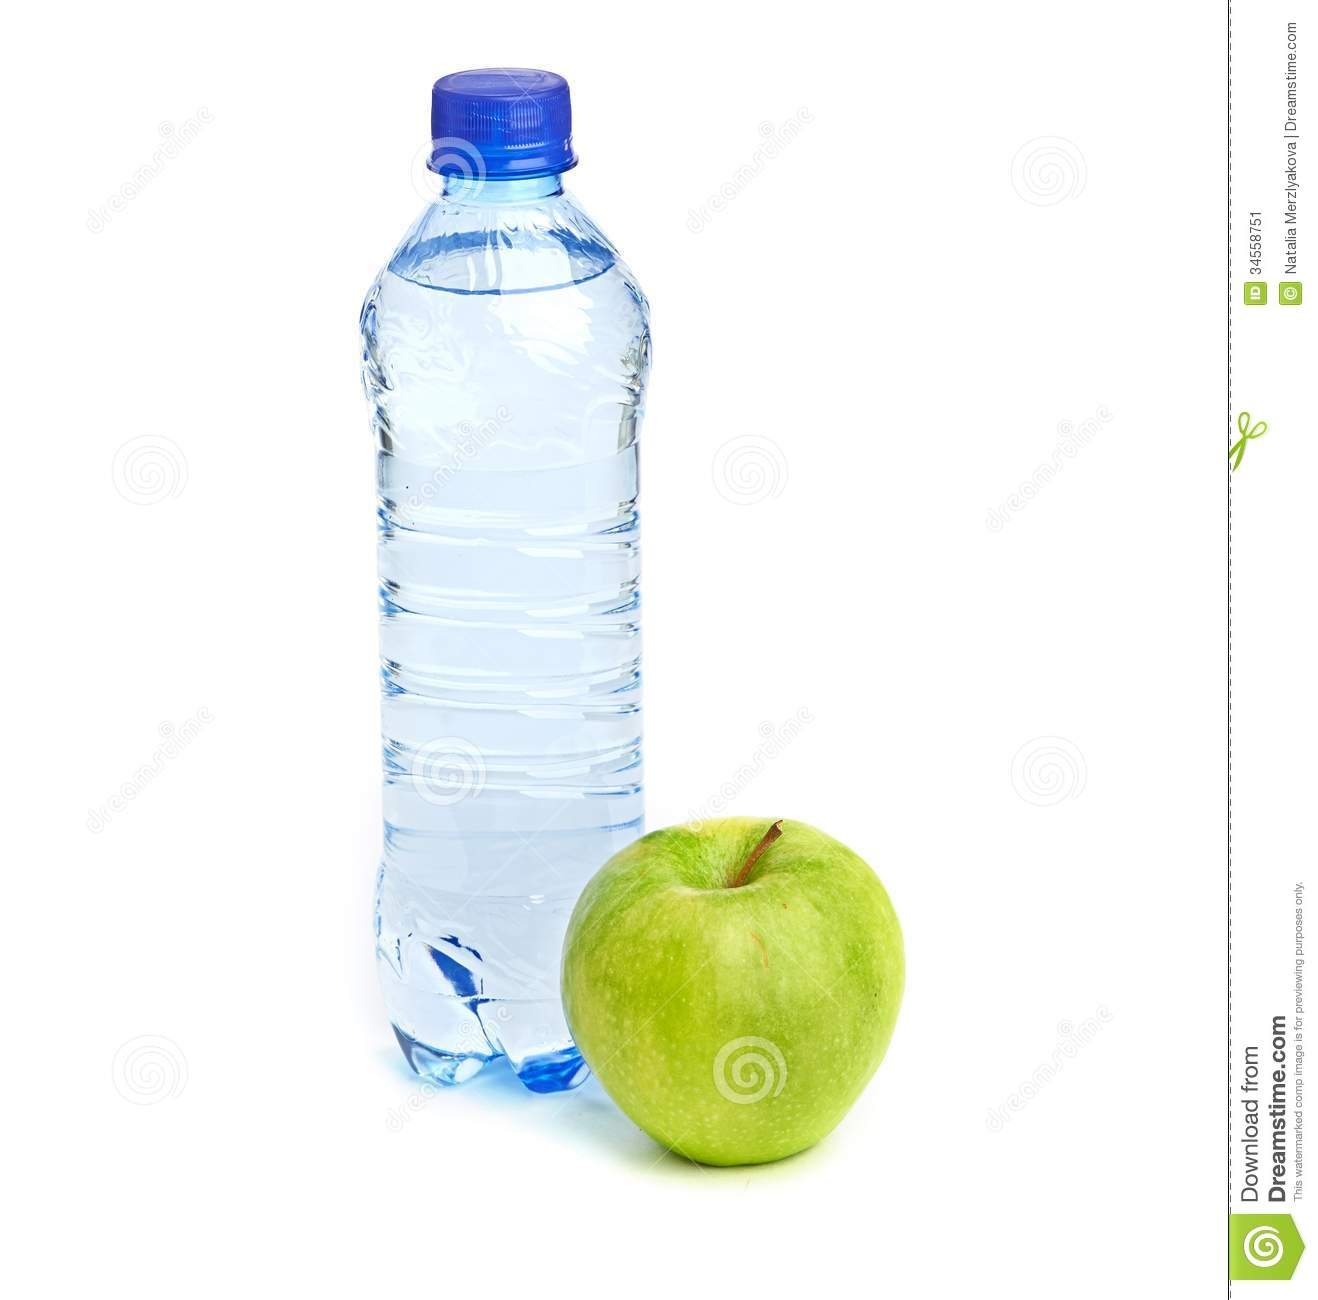 Bottle of sparkling water and green apple. See my other works in ...